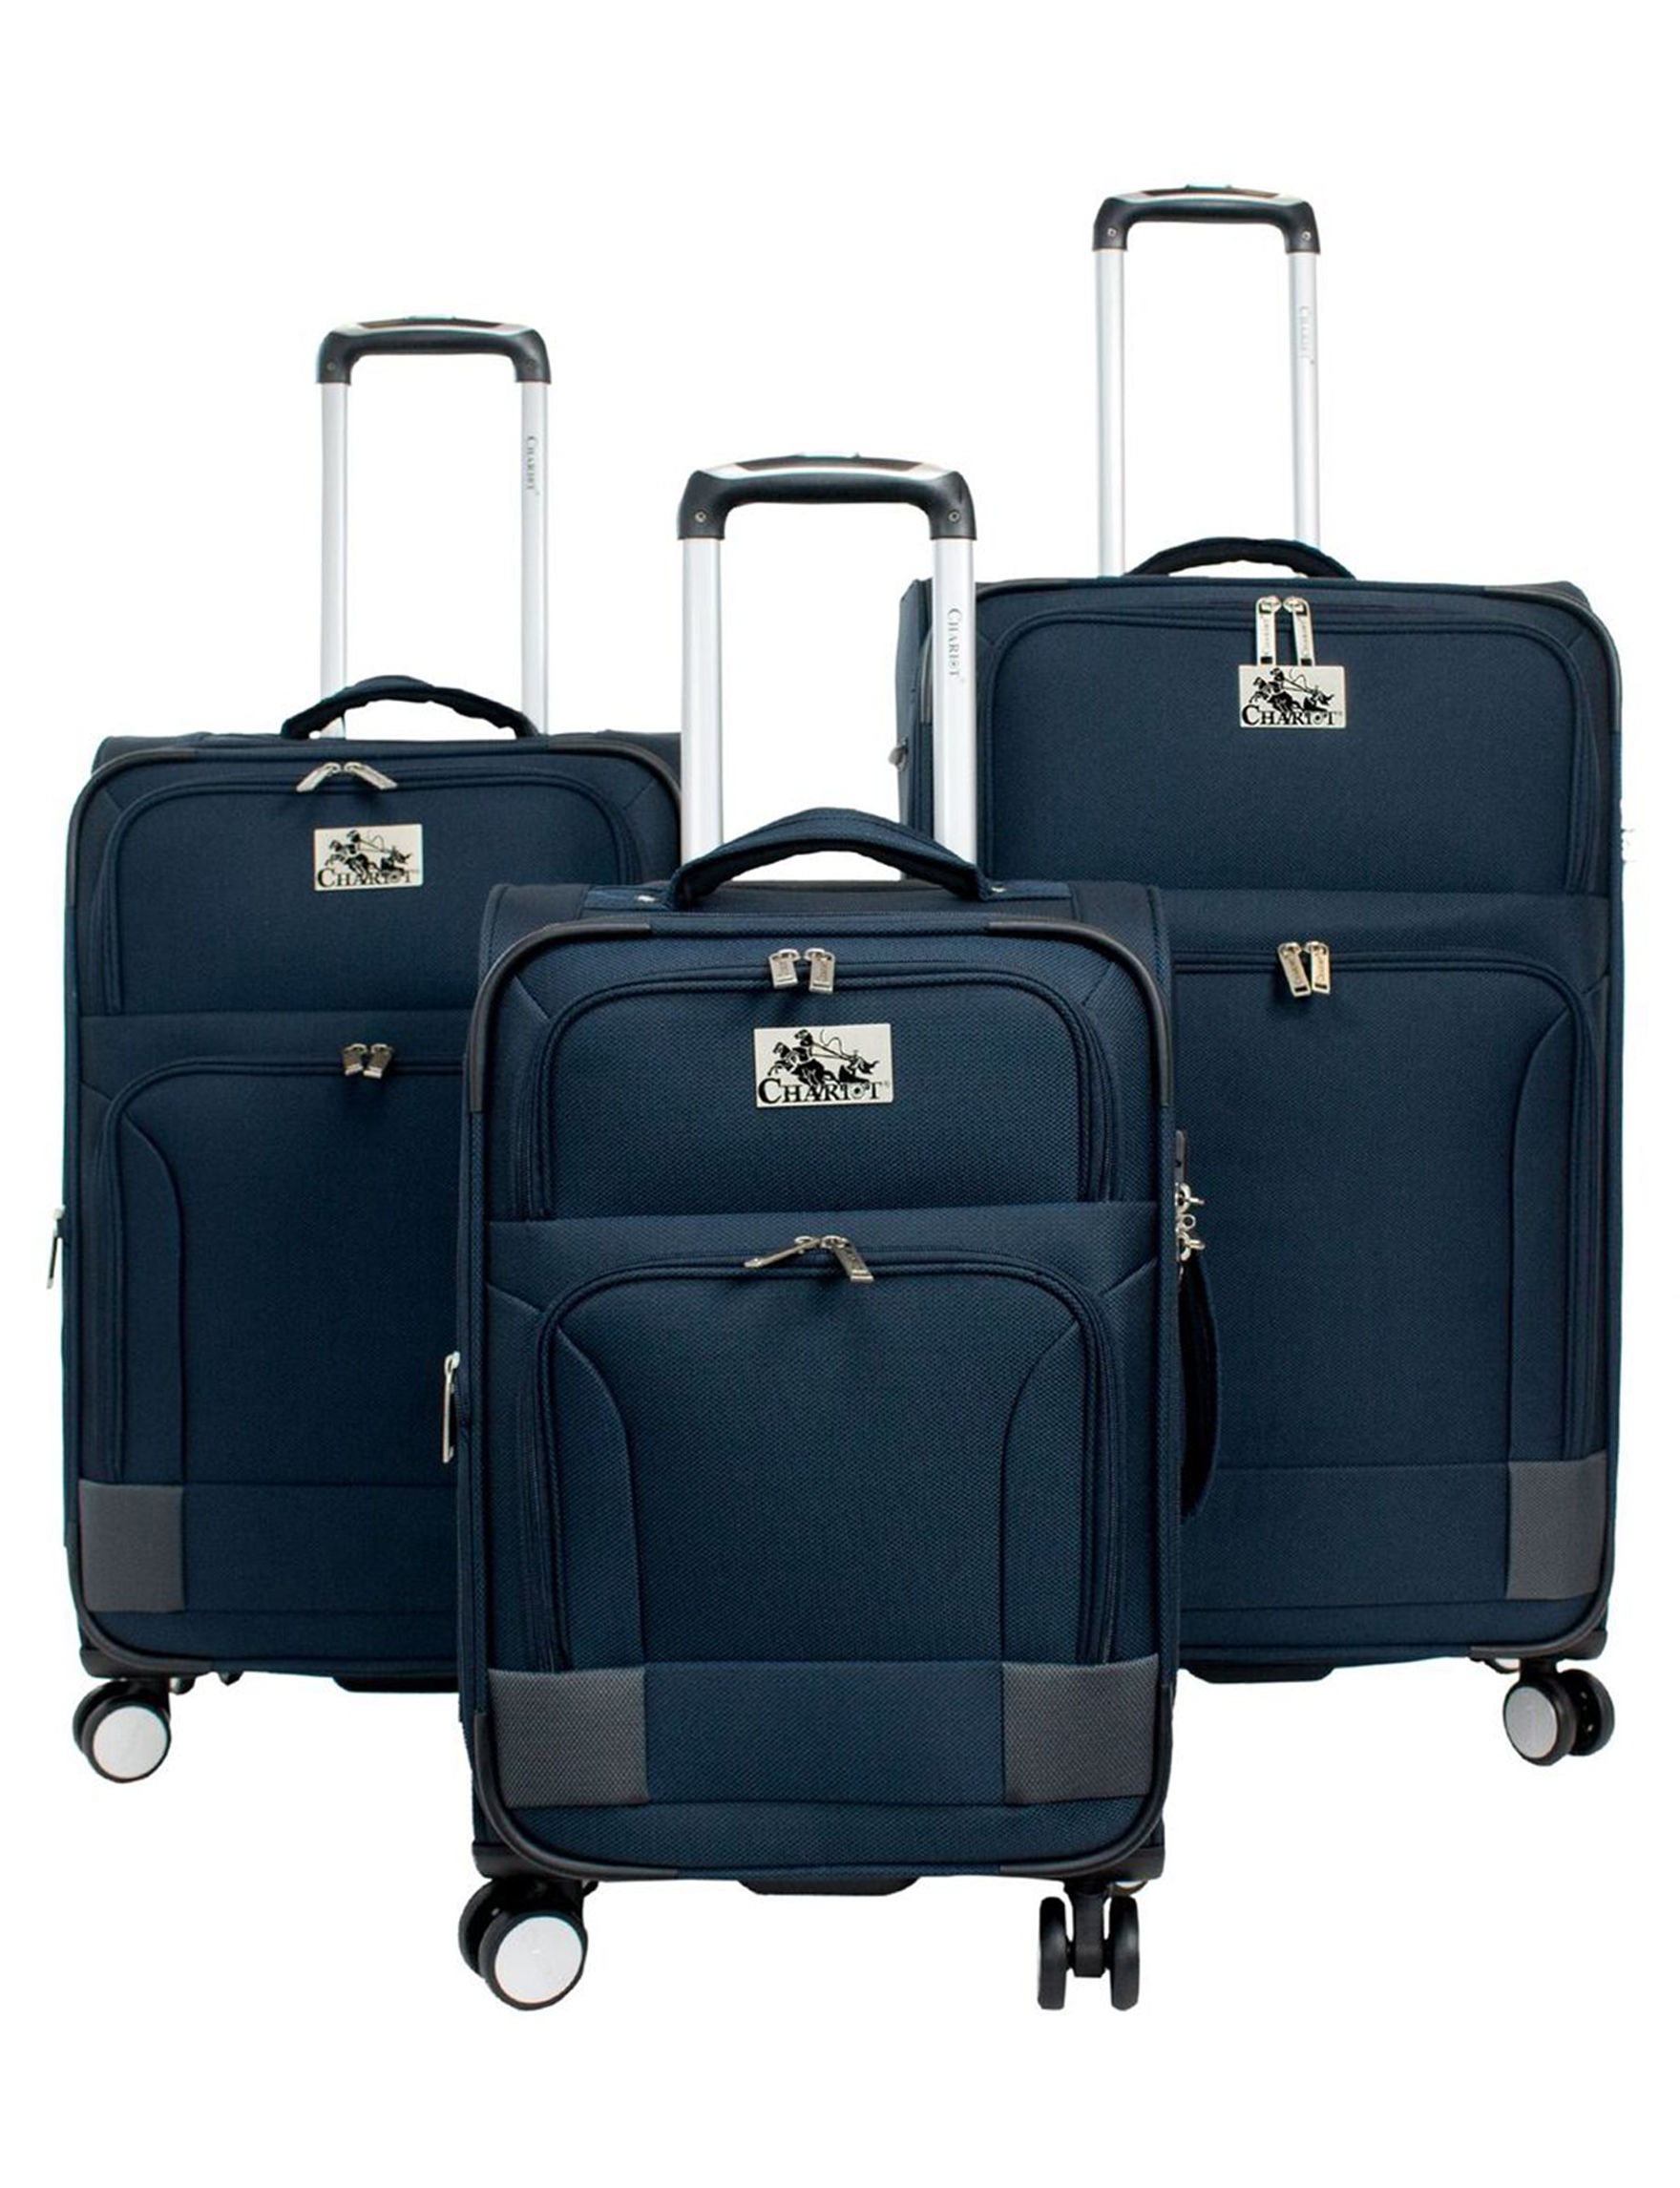 Chariot Travelware Blue Upright Spinners